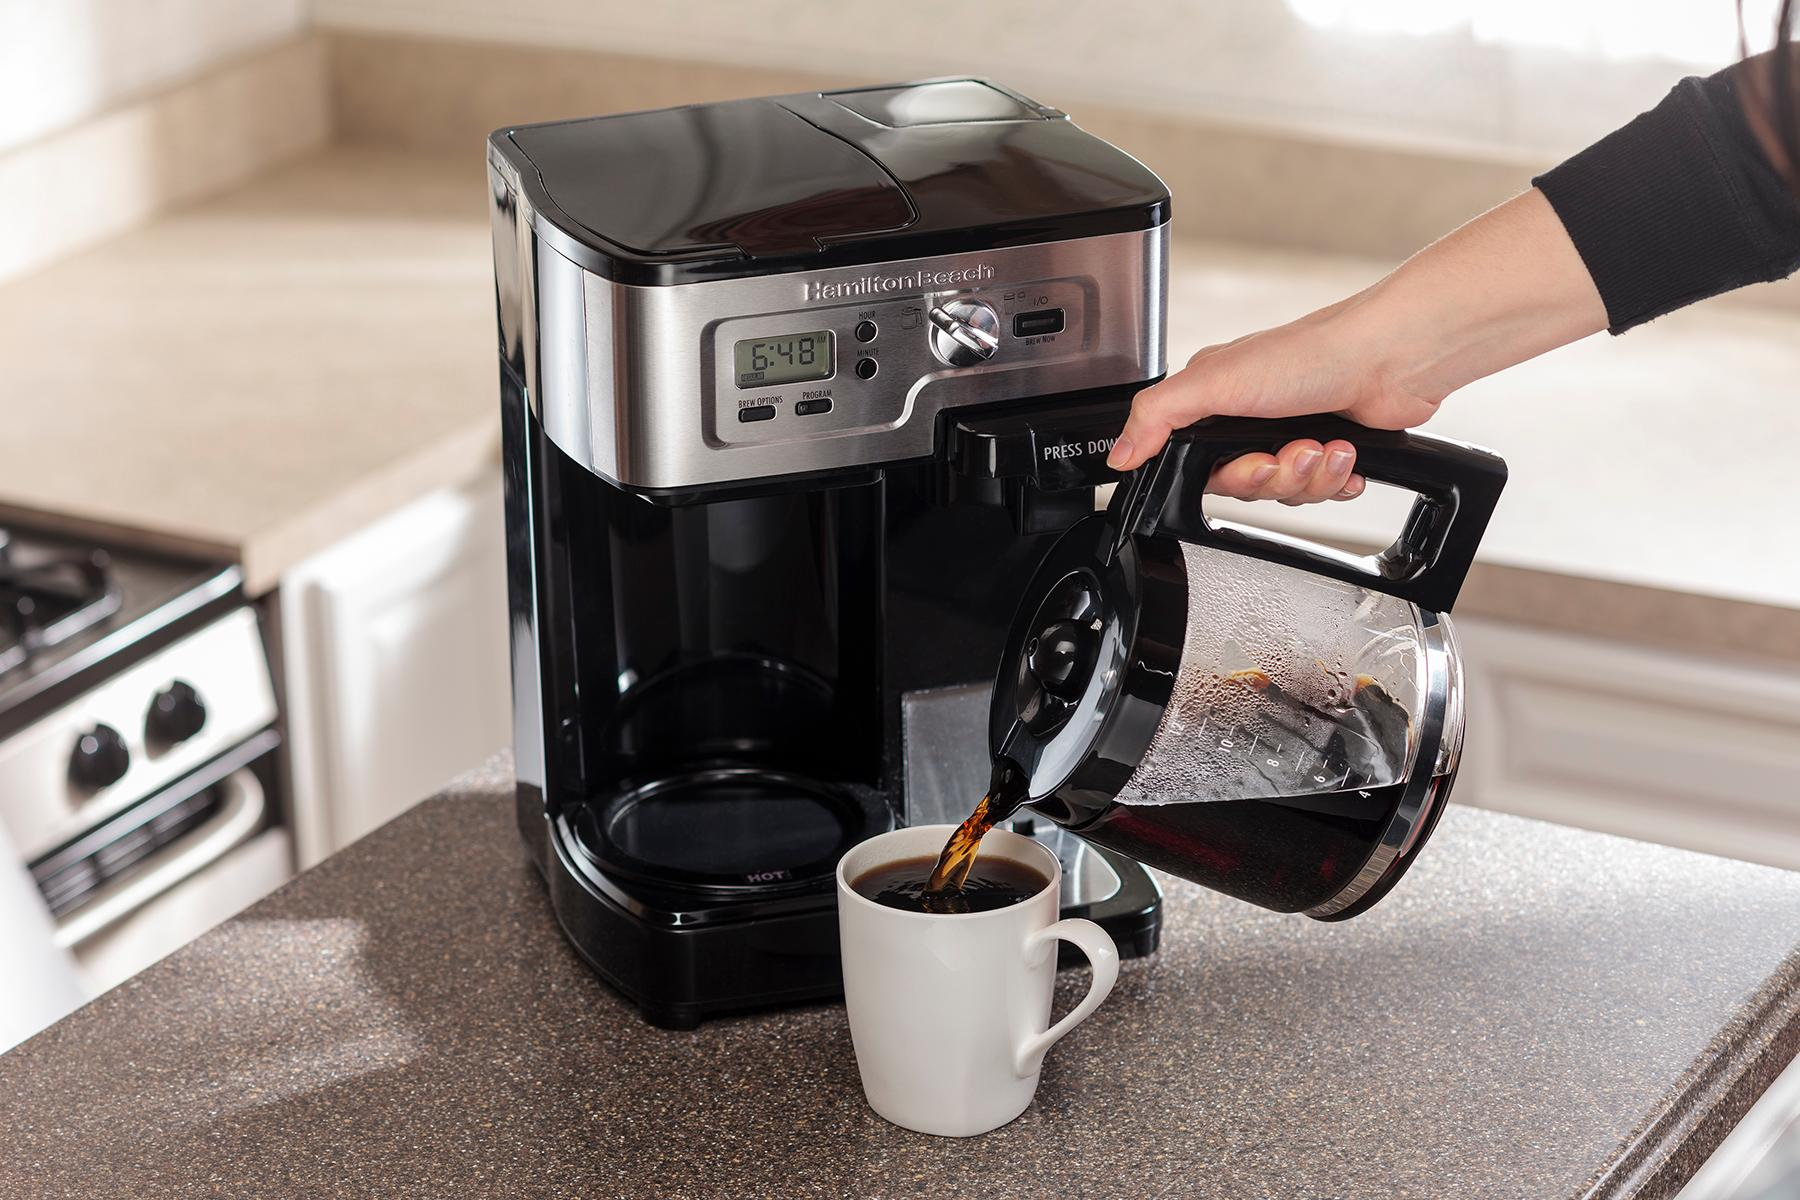 Amazon.com: Hamilton Beach Single Serve Coffee Brewer and Full Pot Coffee Maker, FlexBrew ...